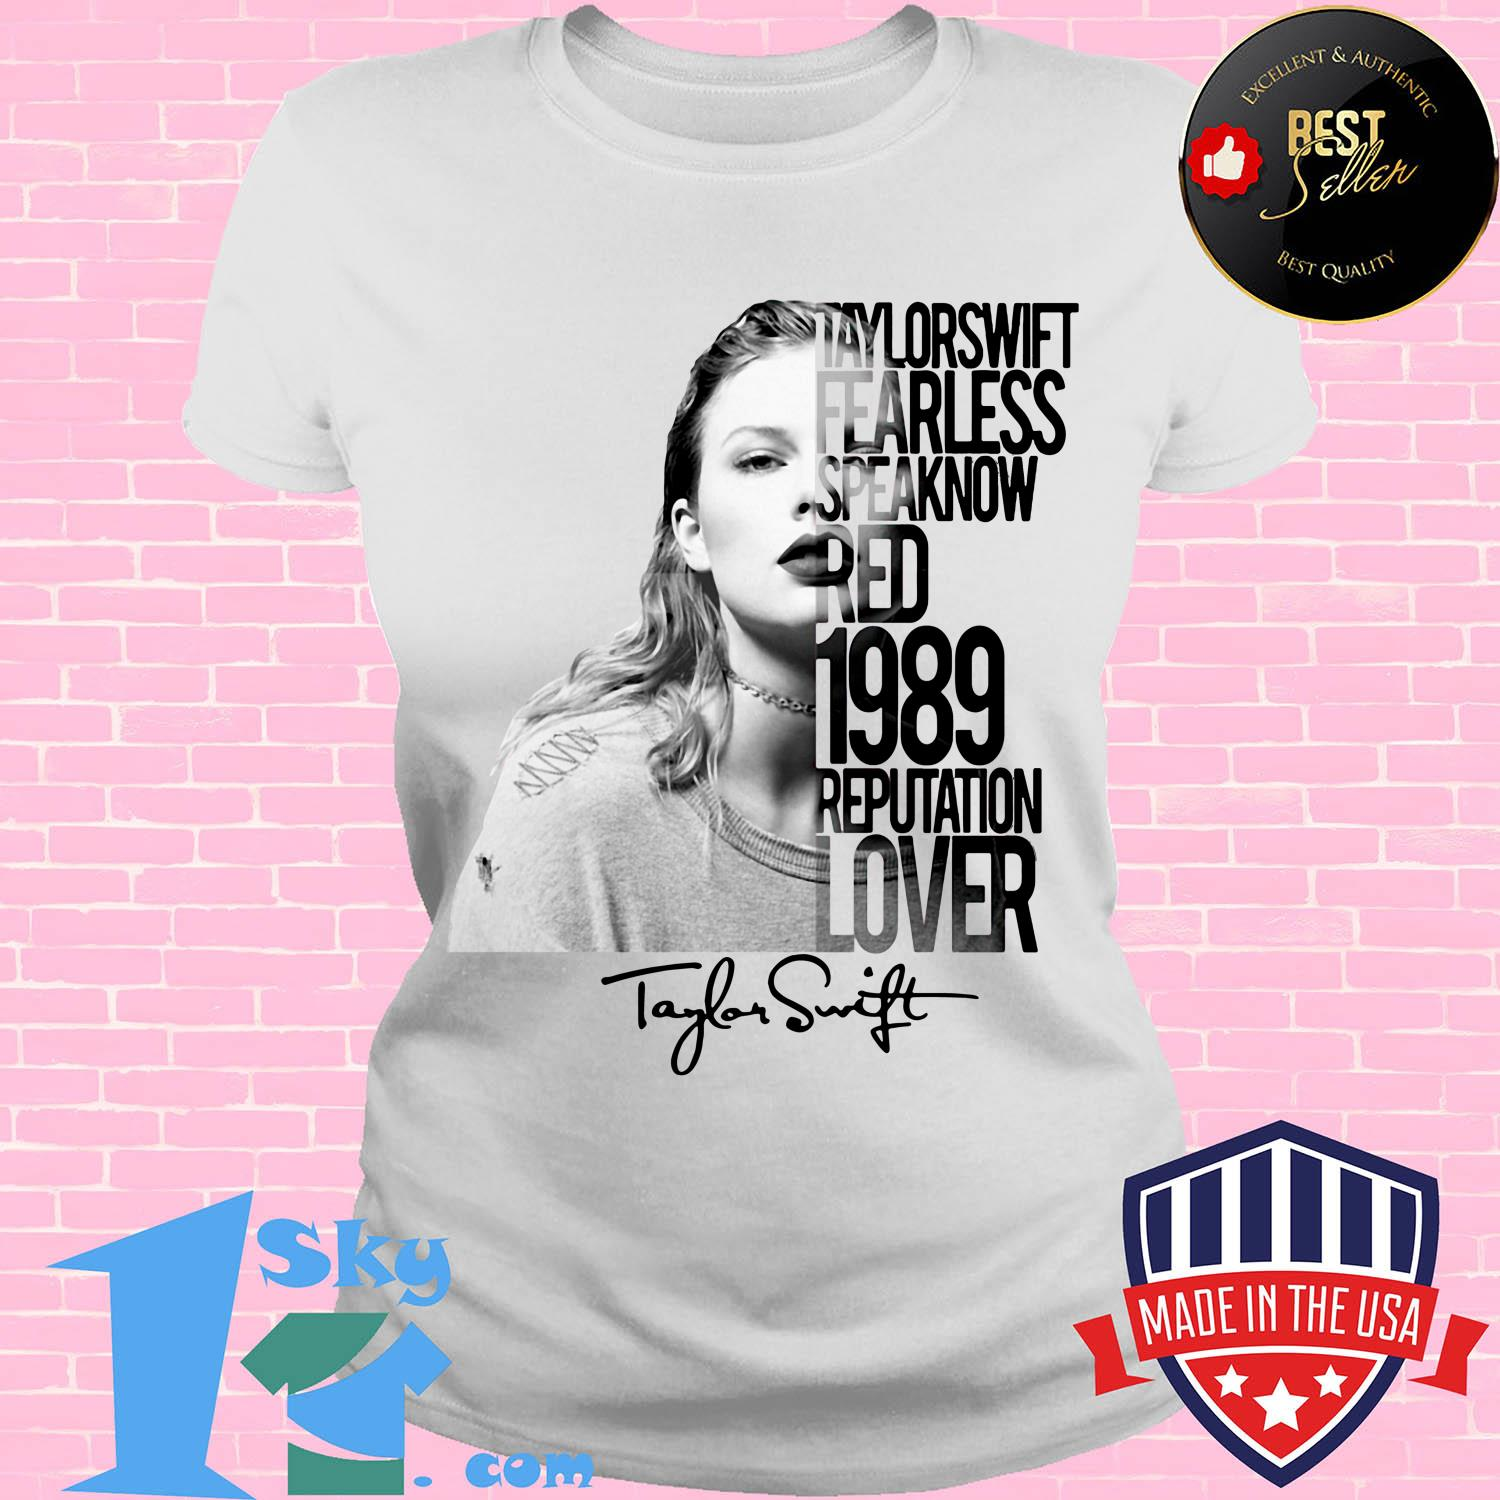 taylor swift fearless speak now red 1989 reputation lover poster ladies tee - Taylor Swift fearless Speak Now Red 1989 Reputation Lover Poster Signature shirt